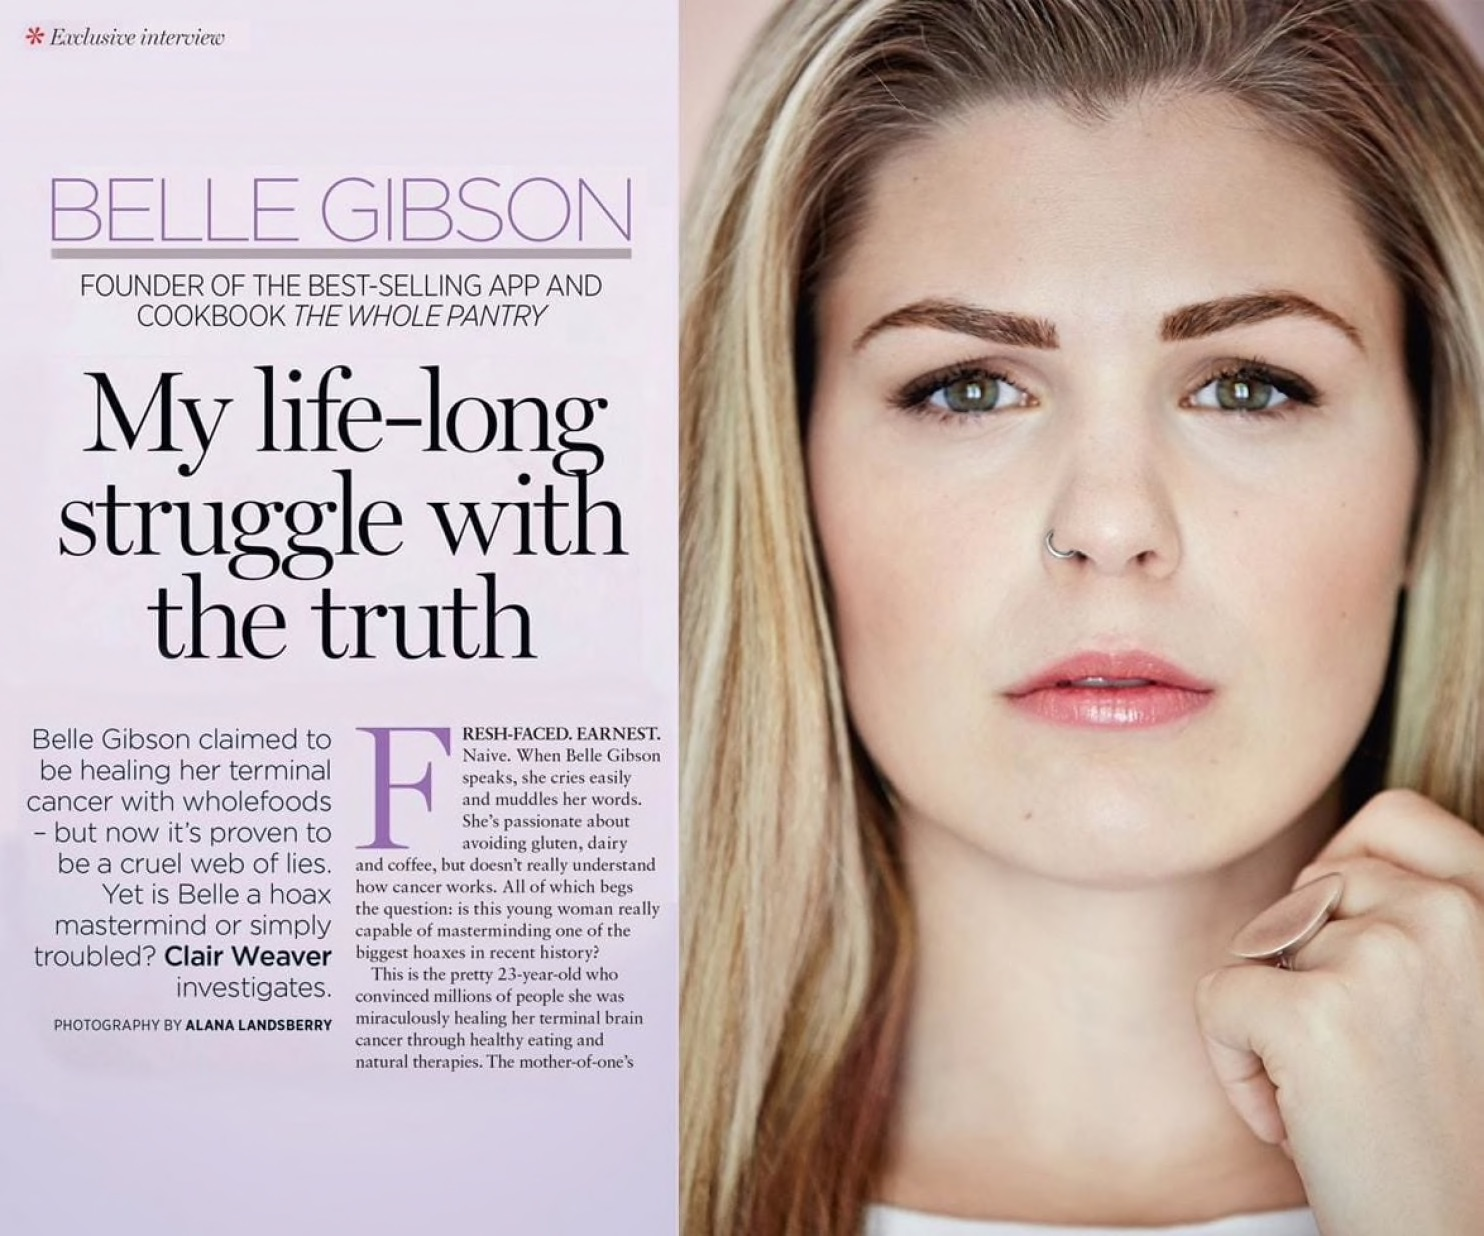 Belle Gibson was ousted as a fraud and was fined by a Victorian court although she is yet to pay any, according to media reports. (Credit: Australian Women's Weekly)